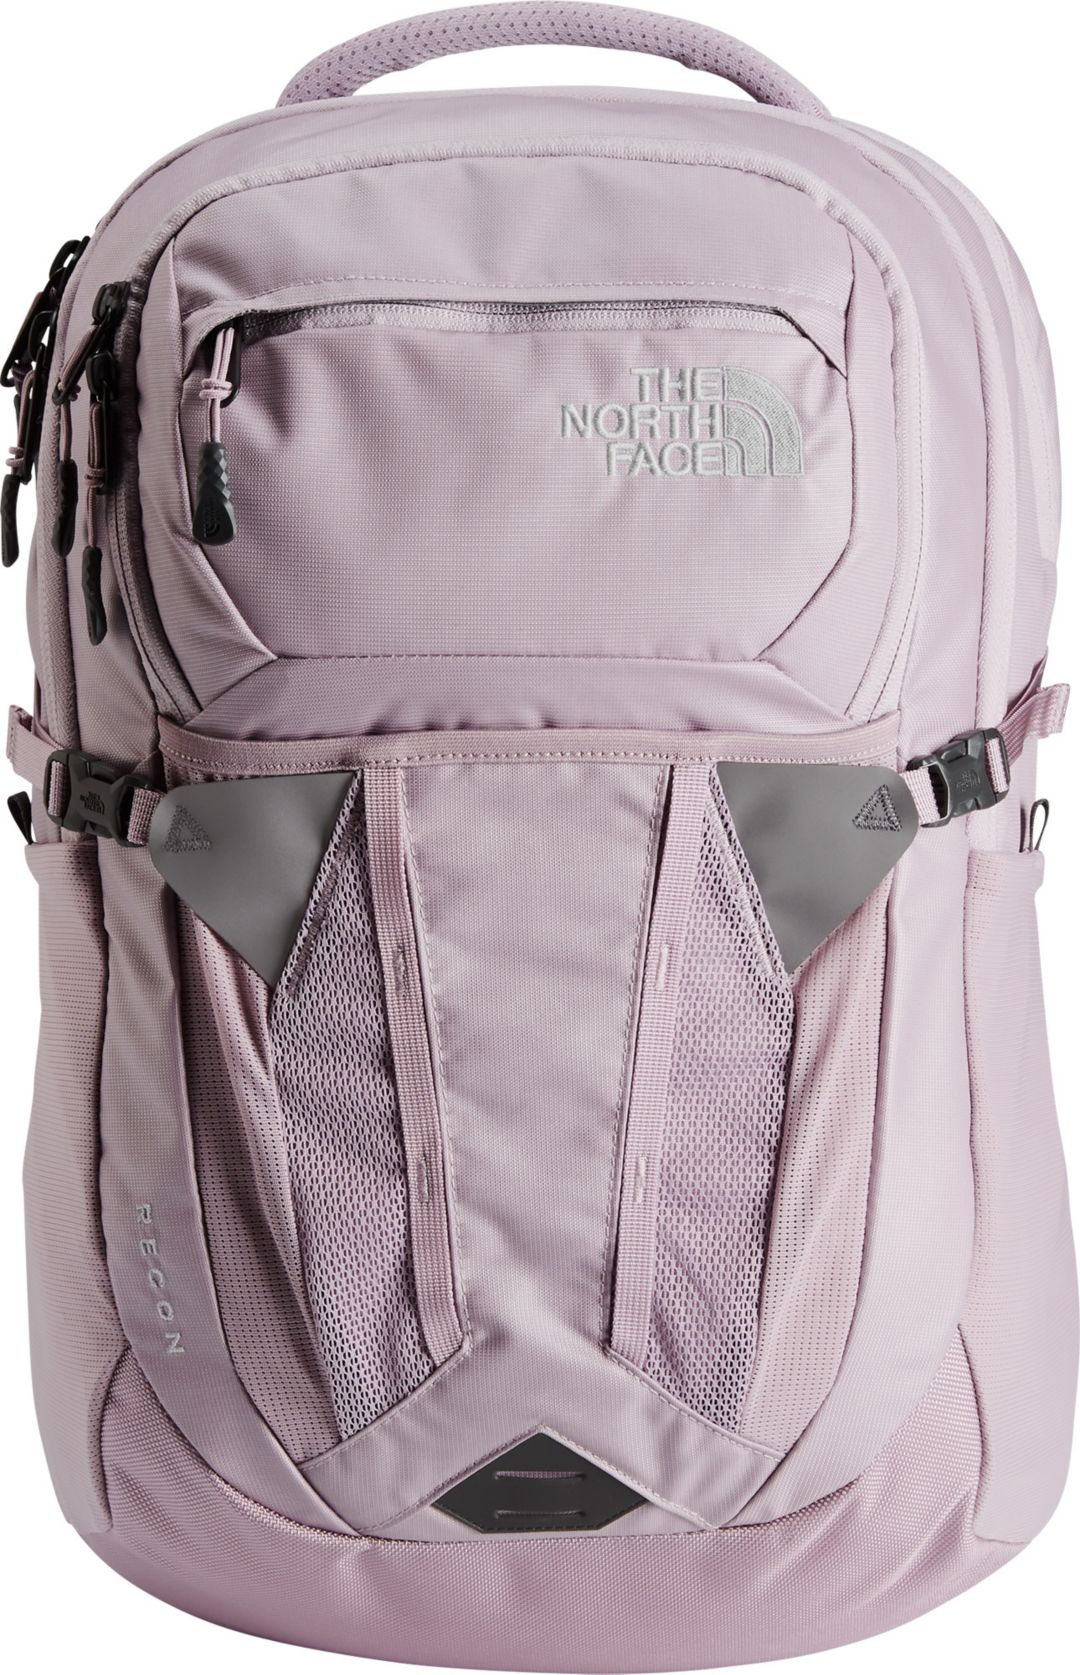 dfe23ad5a The North Face Women's Recon Luxe Backpack